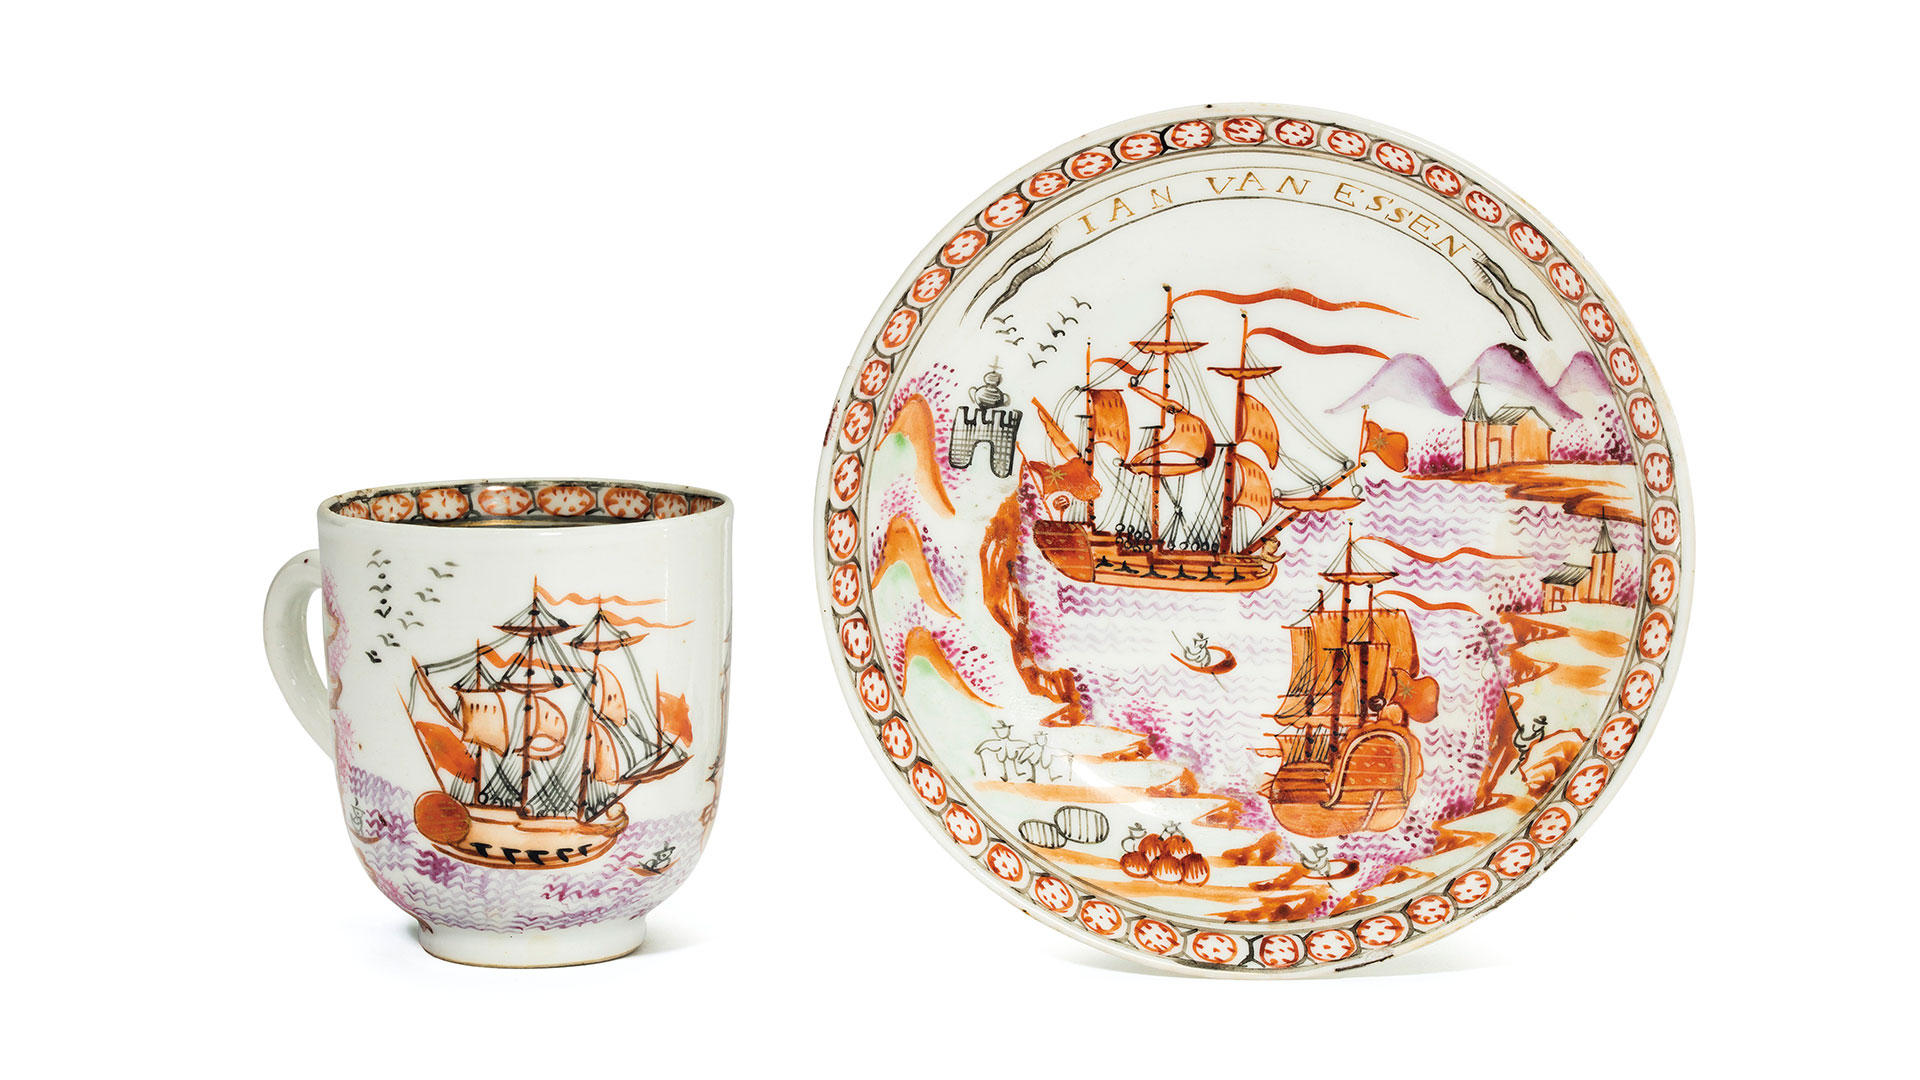 Chinese shipping-themed cup and saucer, circa 1770.